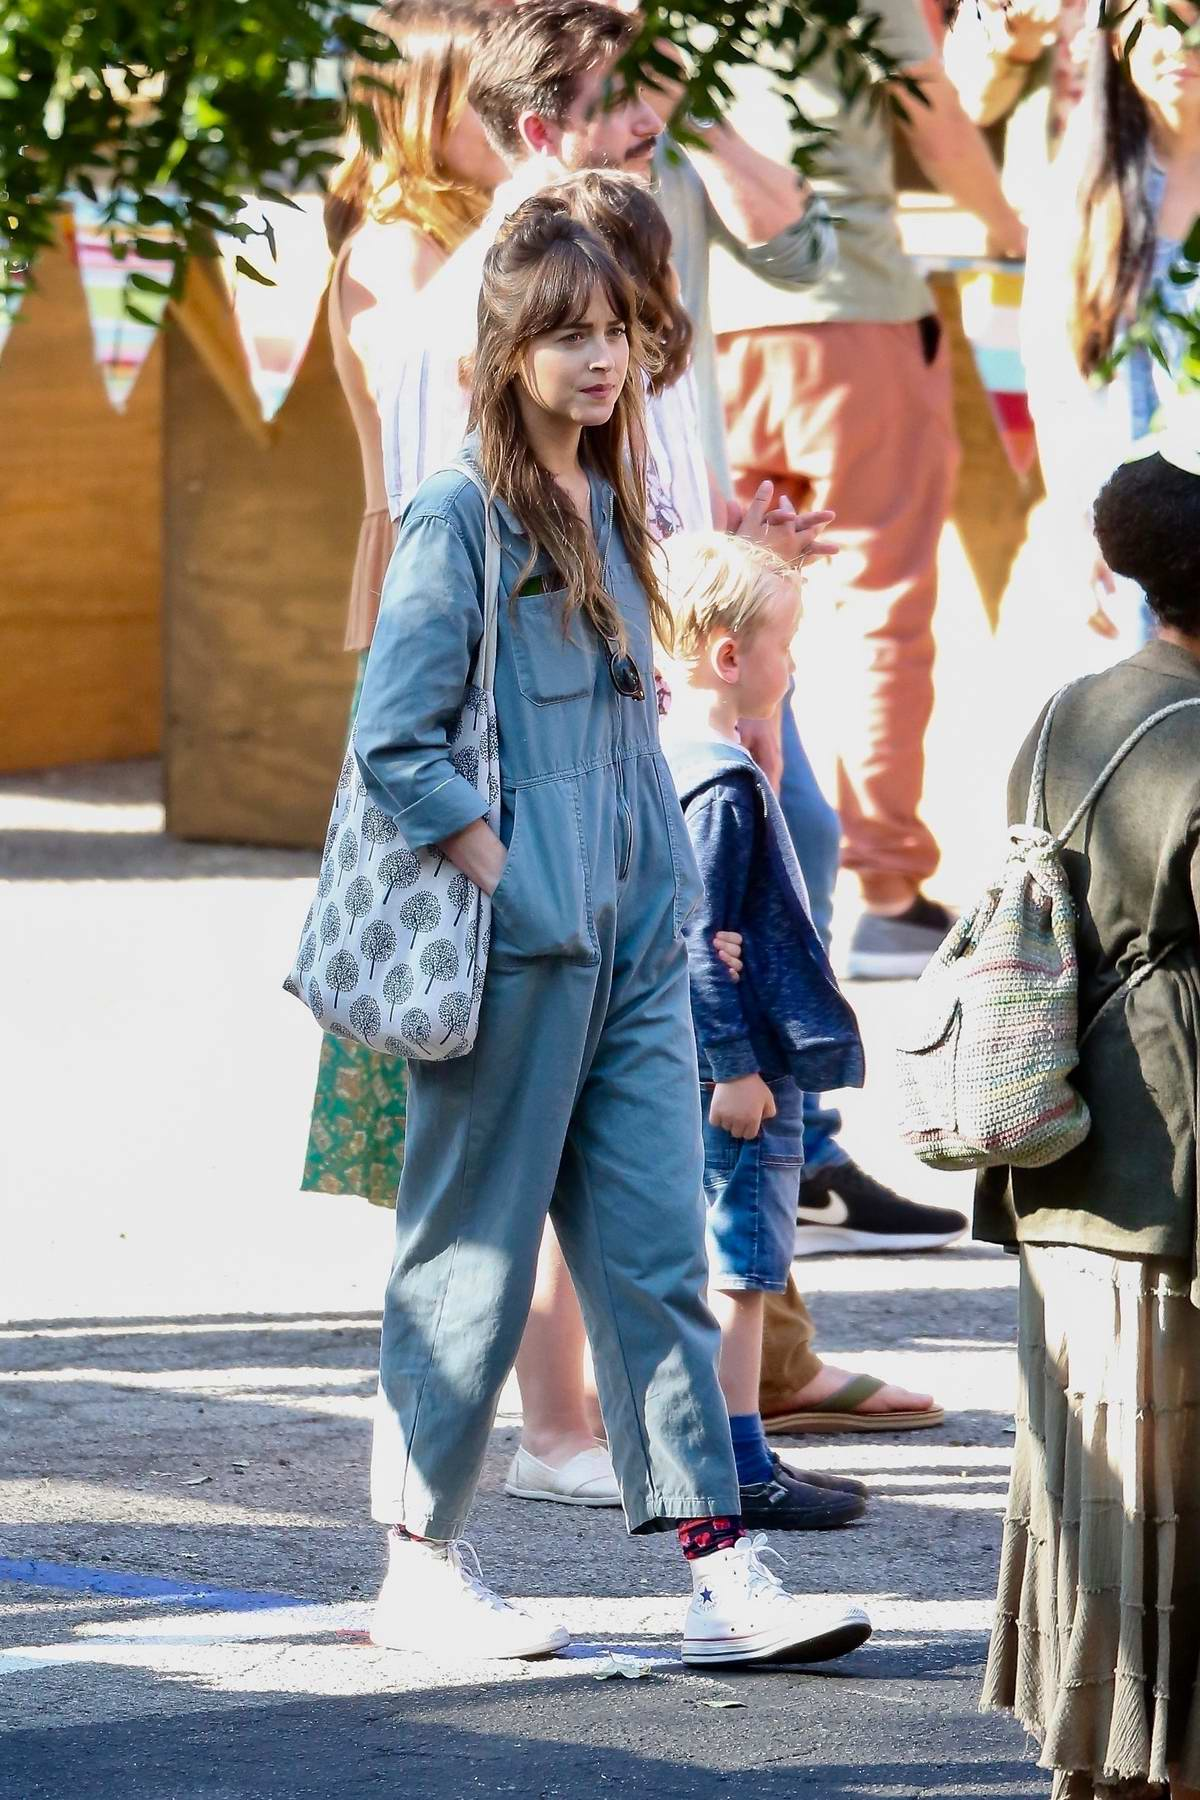 Dakota Johnson spotted filming for her upcoming movie 'Covers' in Los Angeles